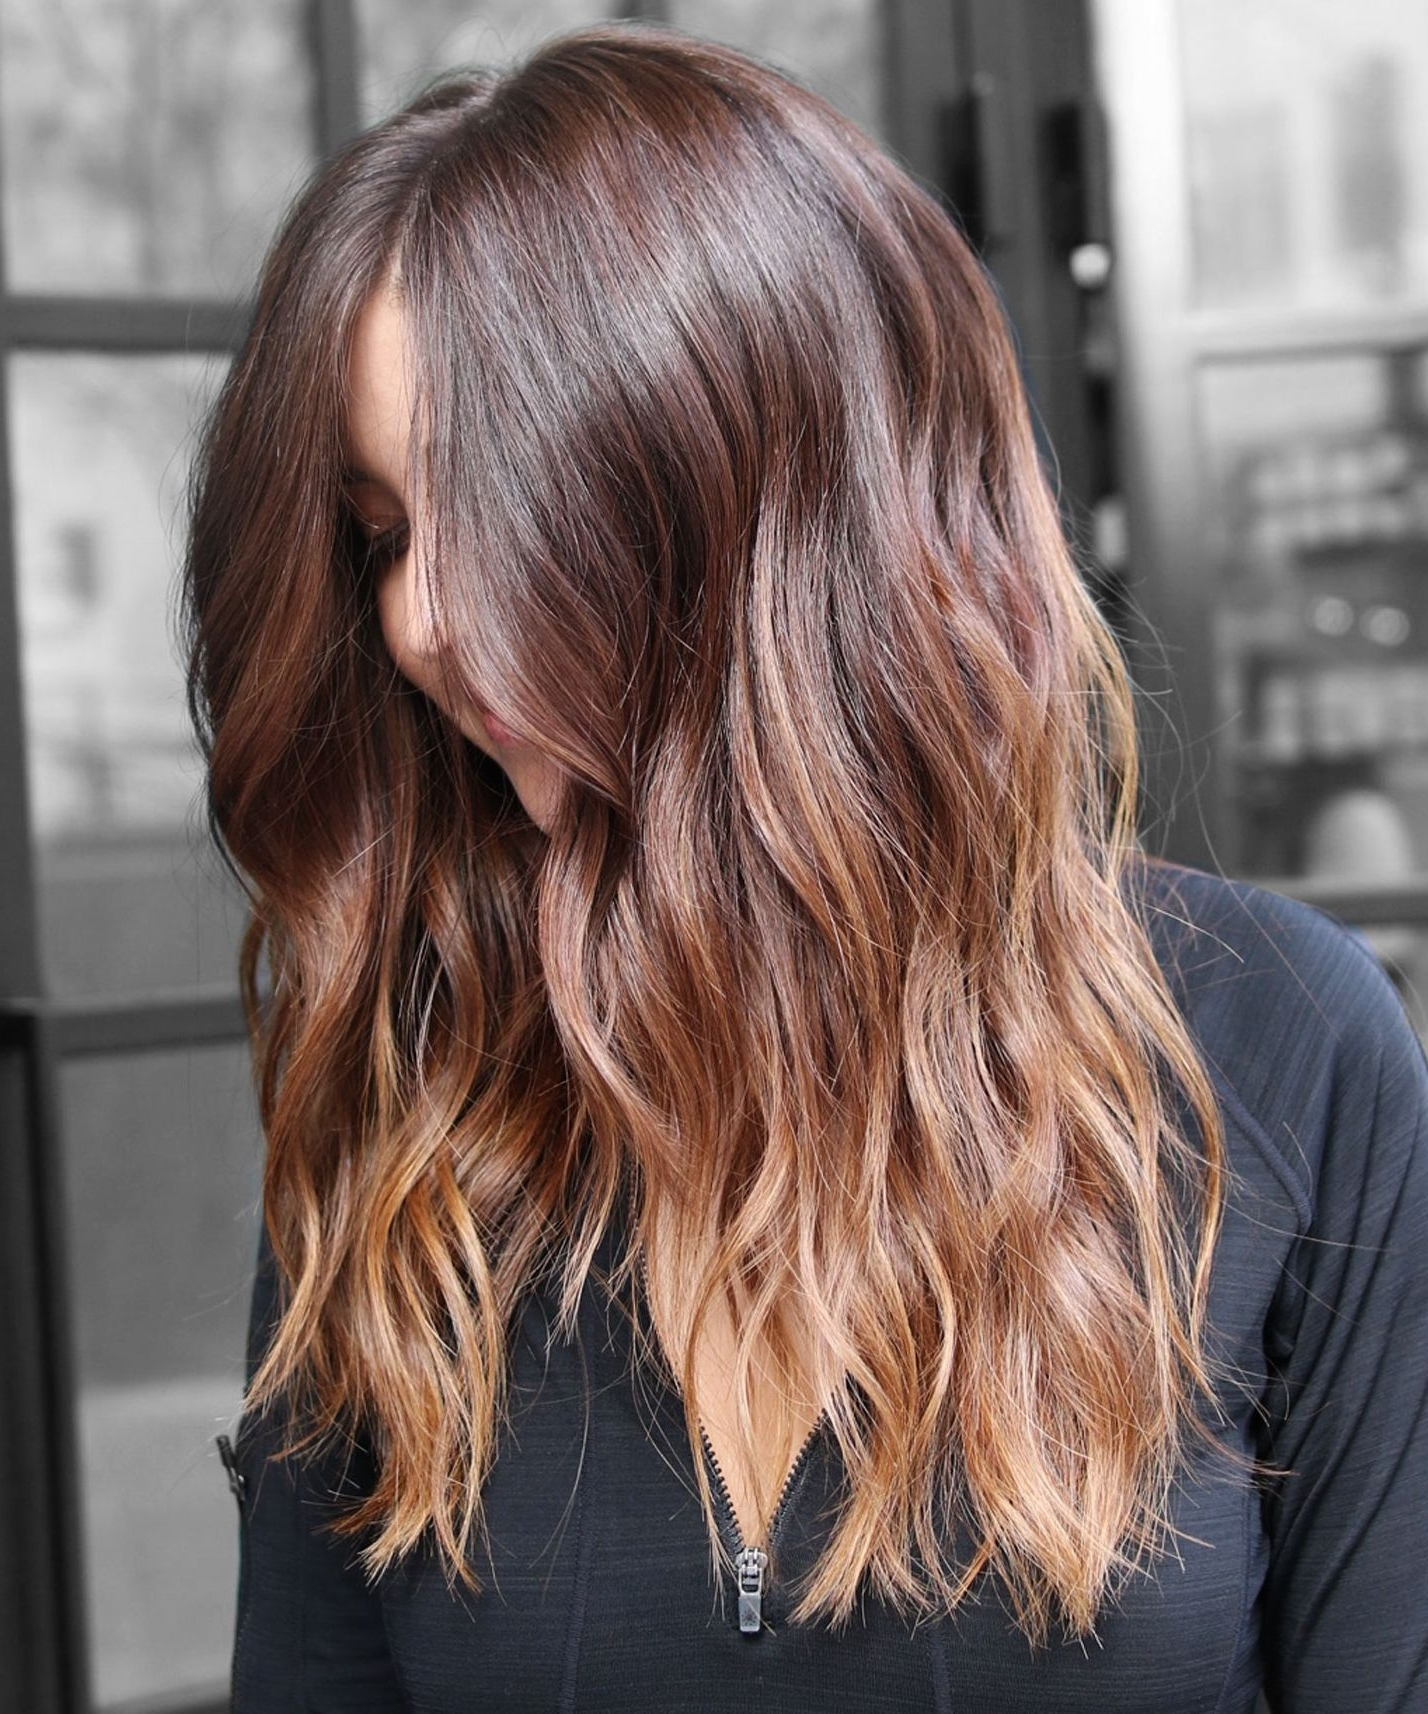 Hair Color Trends 2018 – Winter Hairstyles For Most Recently Released Creamy Blonde Fade Hairstyles (View 8 of 20)